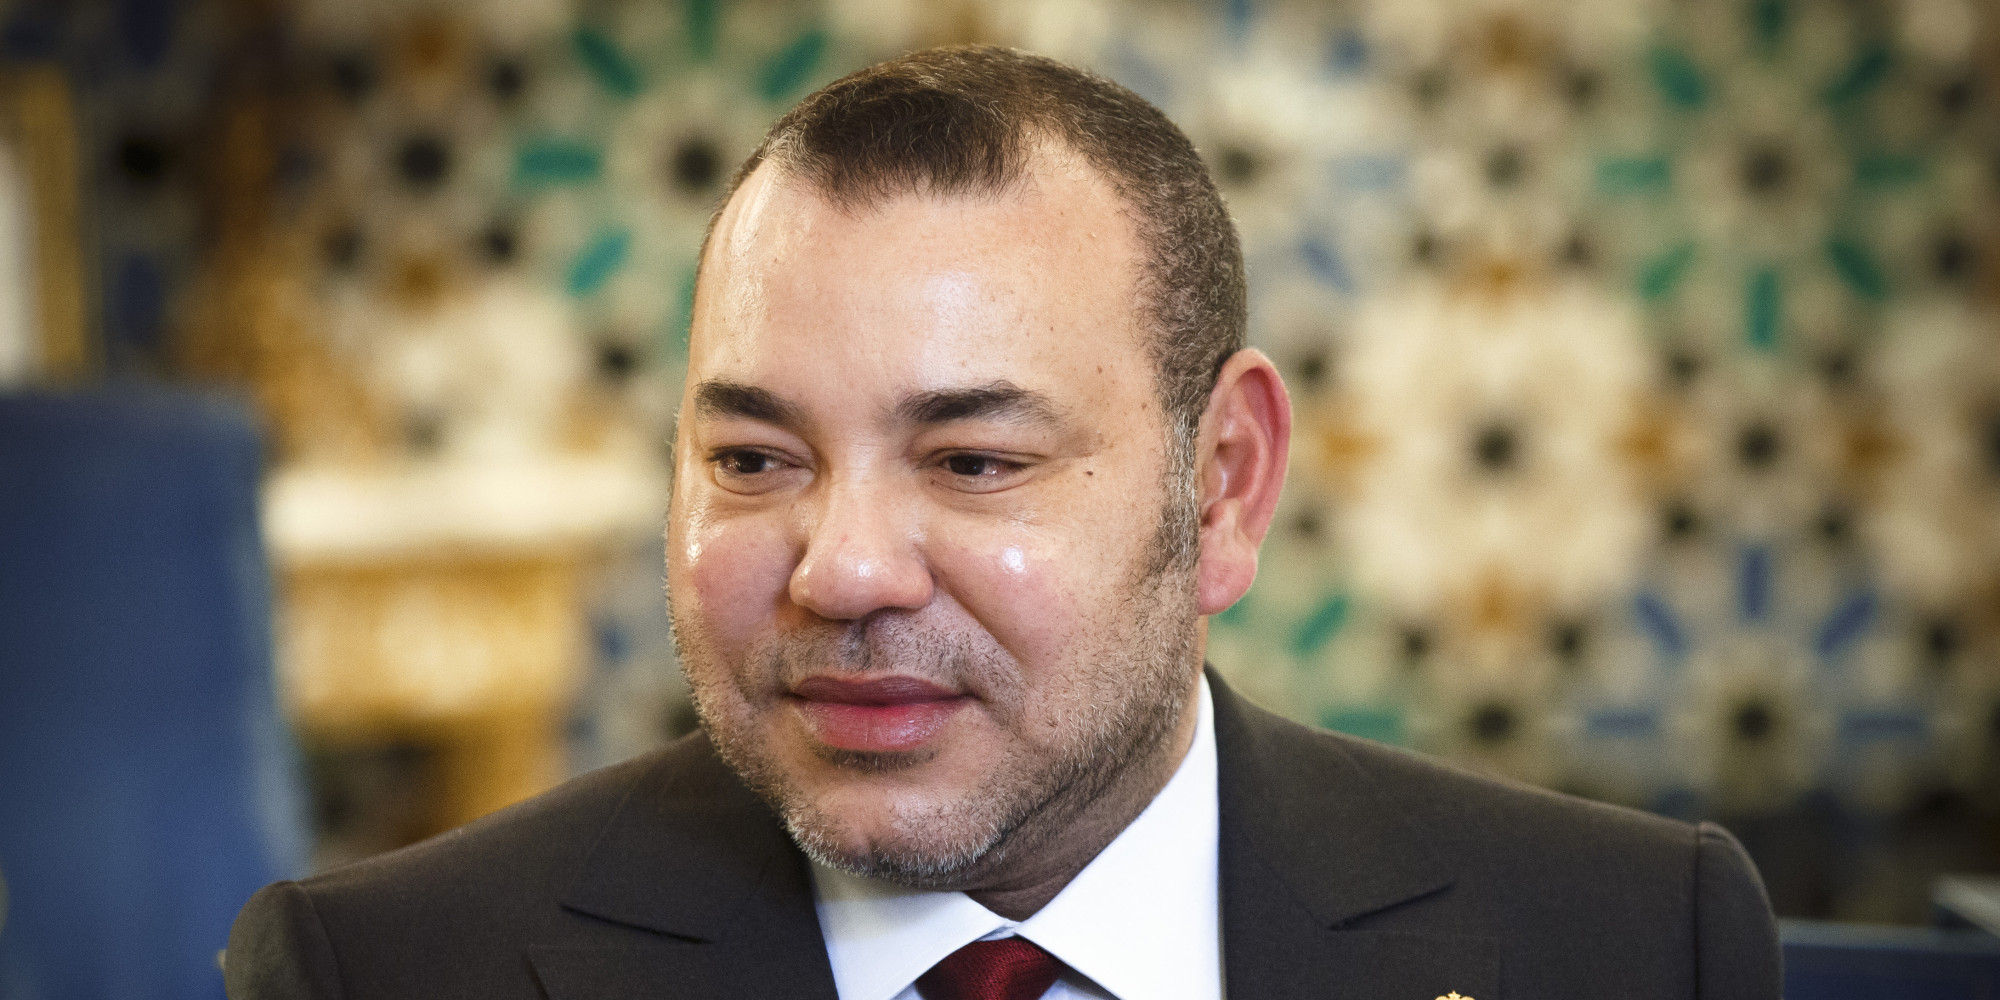 Mohammed VI Net Worth